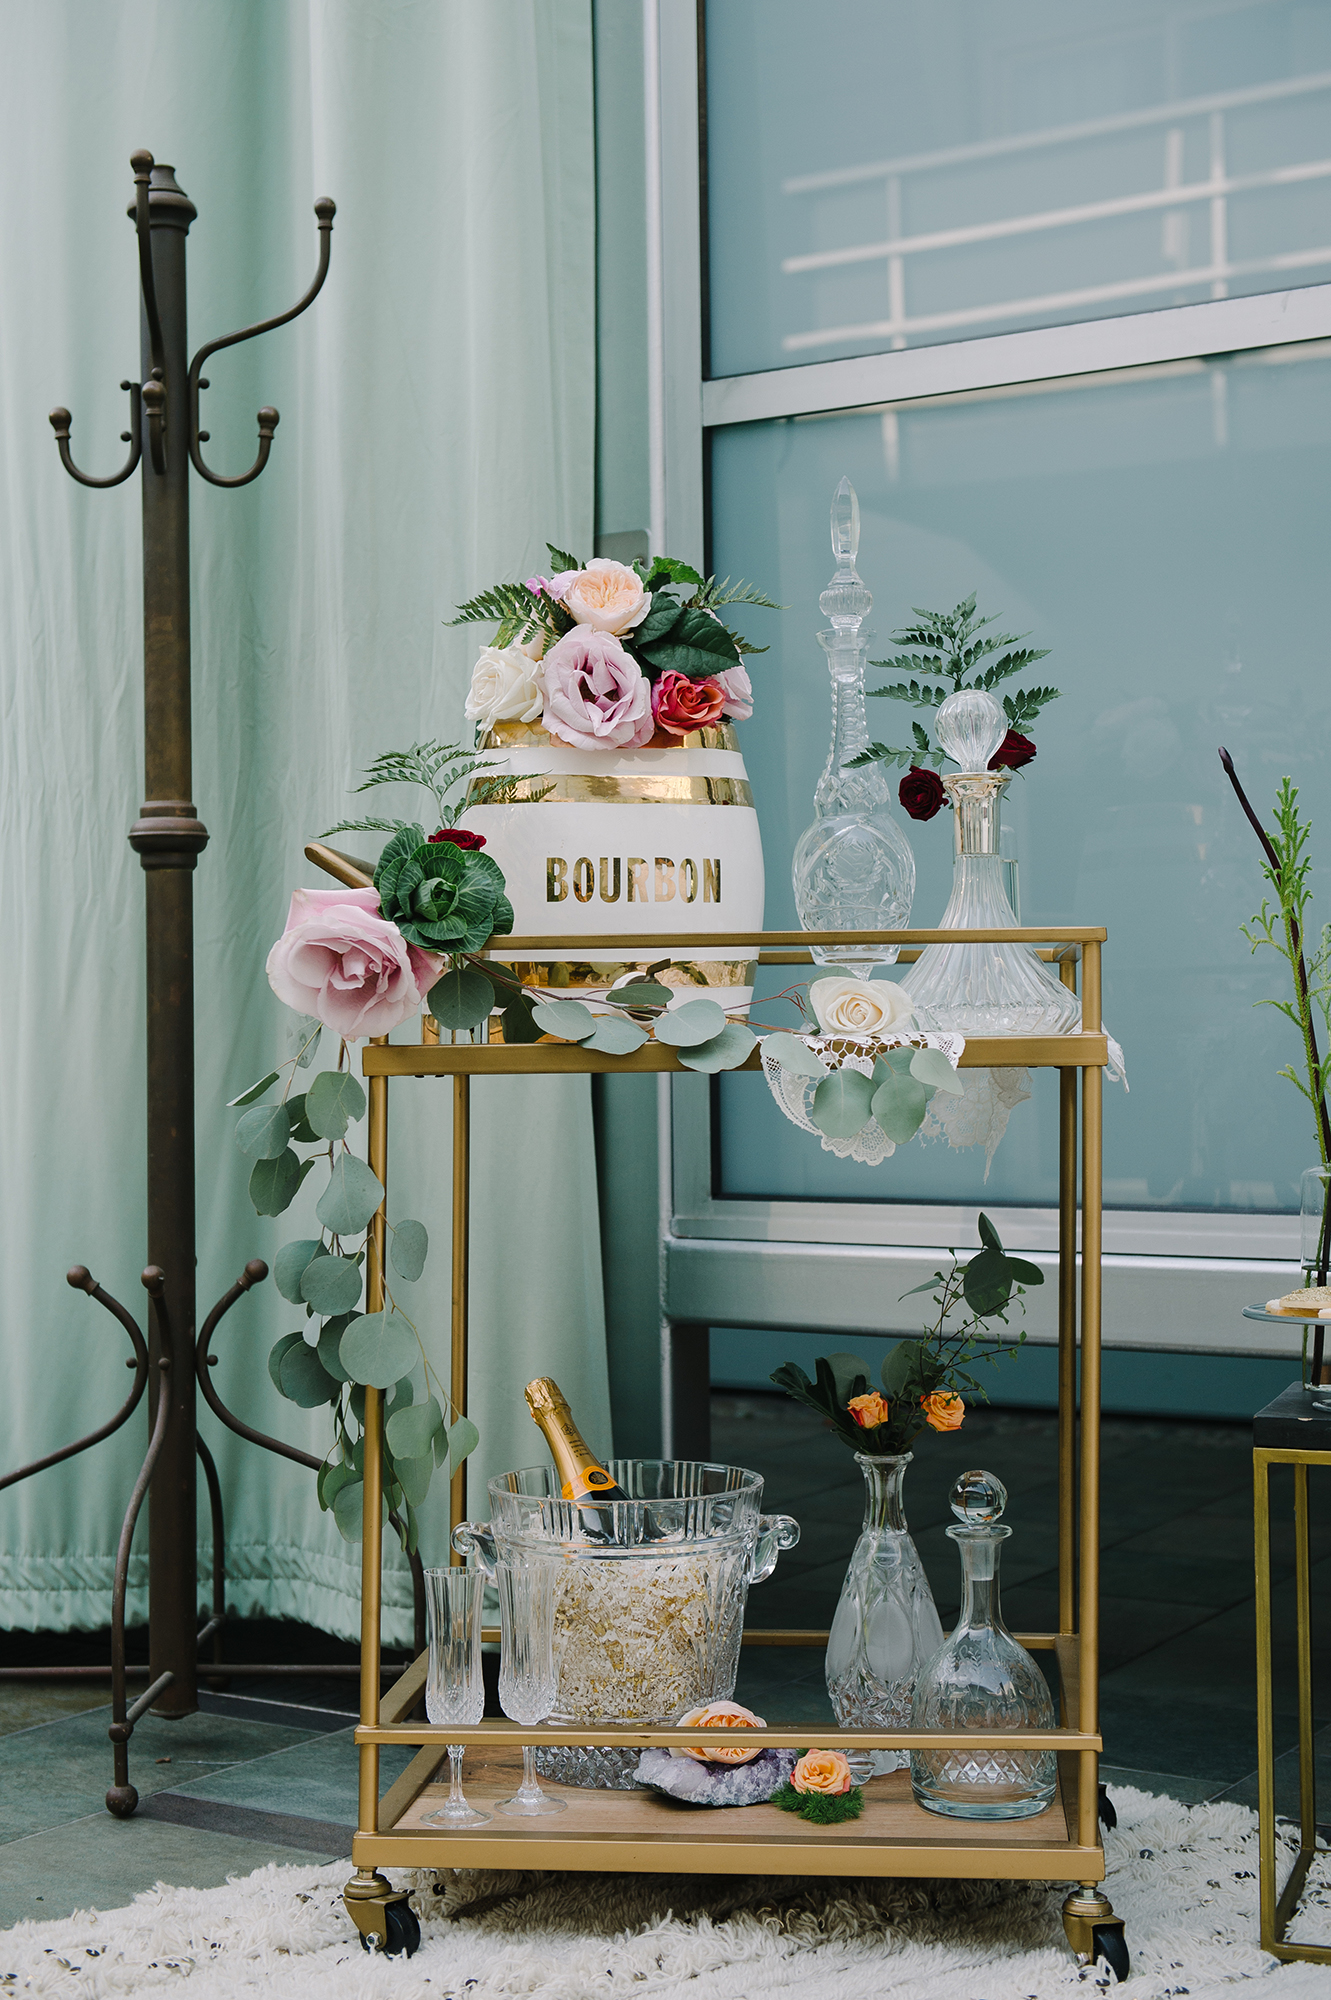 20 Bar Carts That'll Transform Your Wedding's Cocktail Hour and Reception